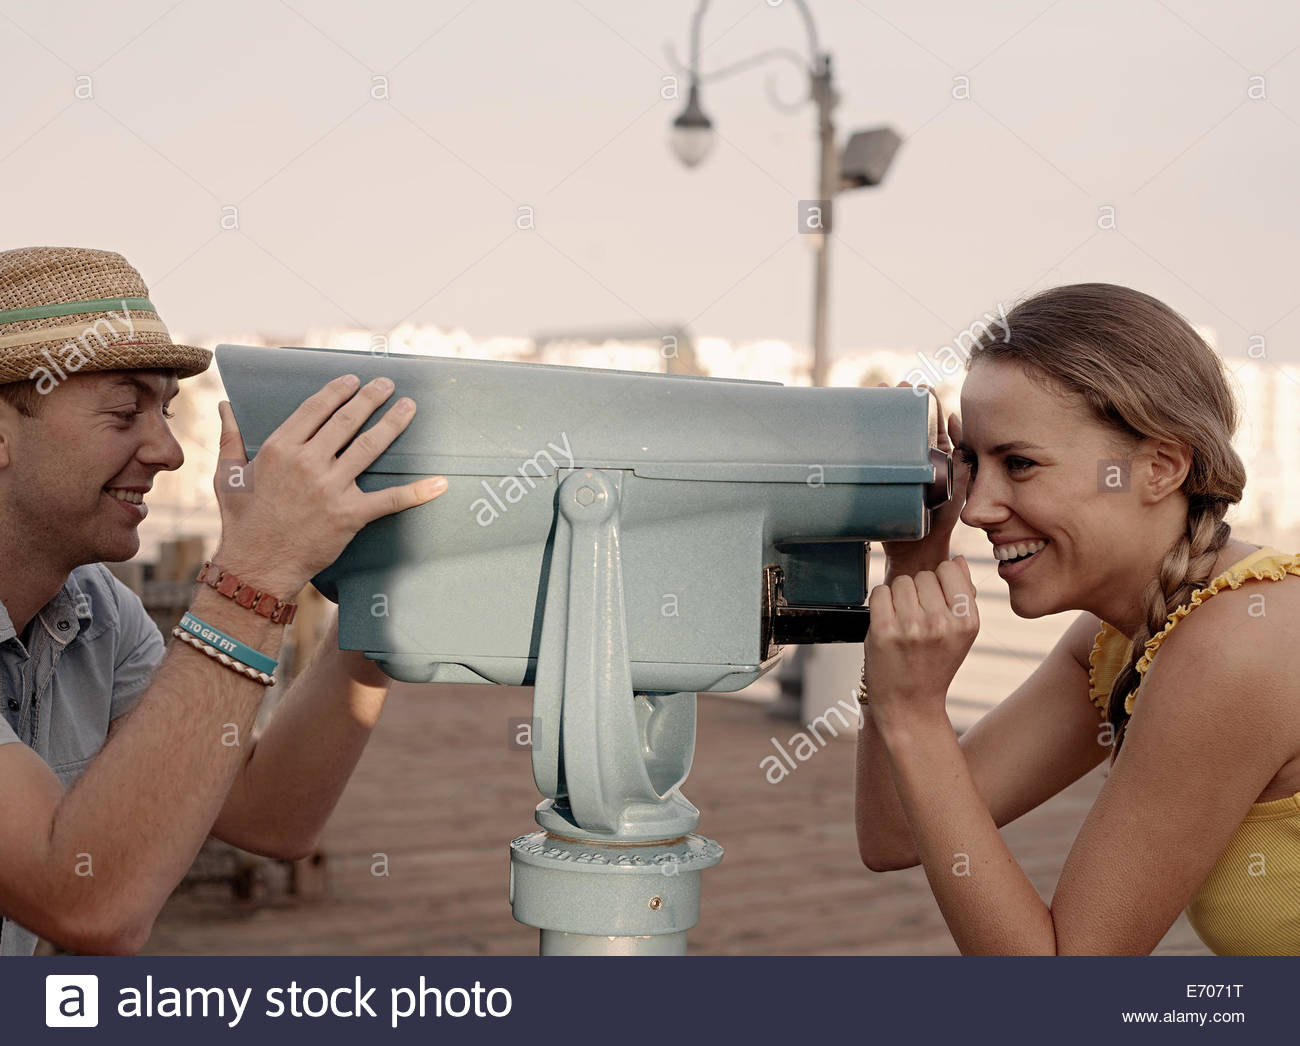 Young couple looking at each other through coin binoculars on Santa Monica pier, California, USA - Stock Image